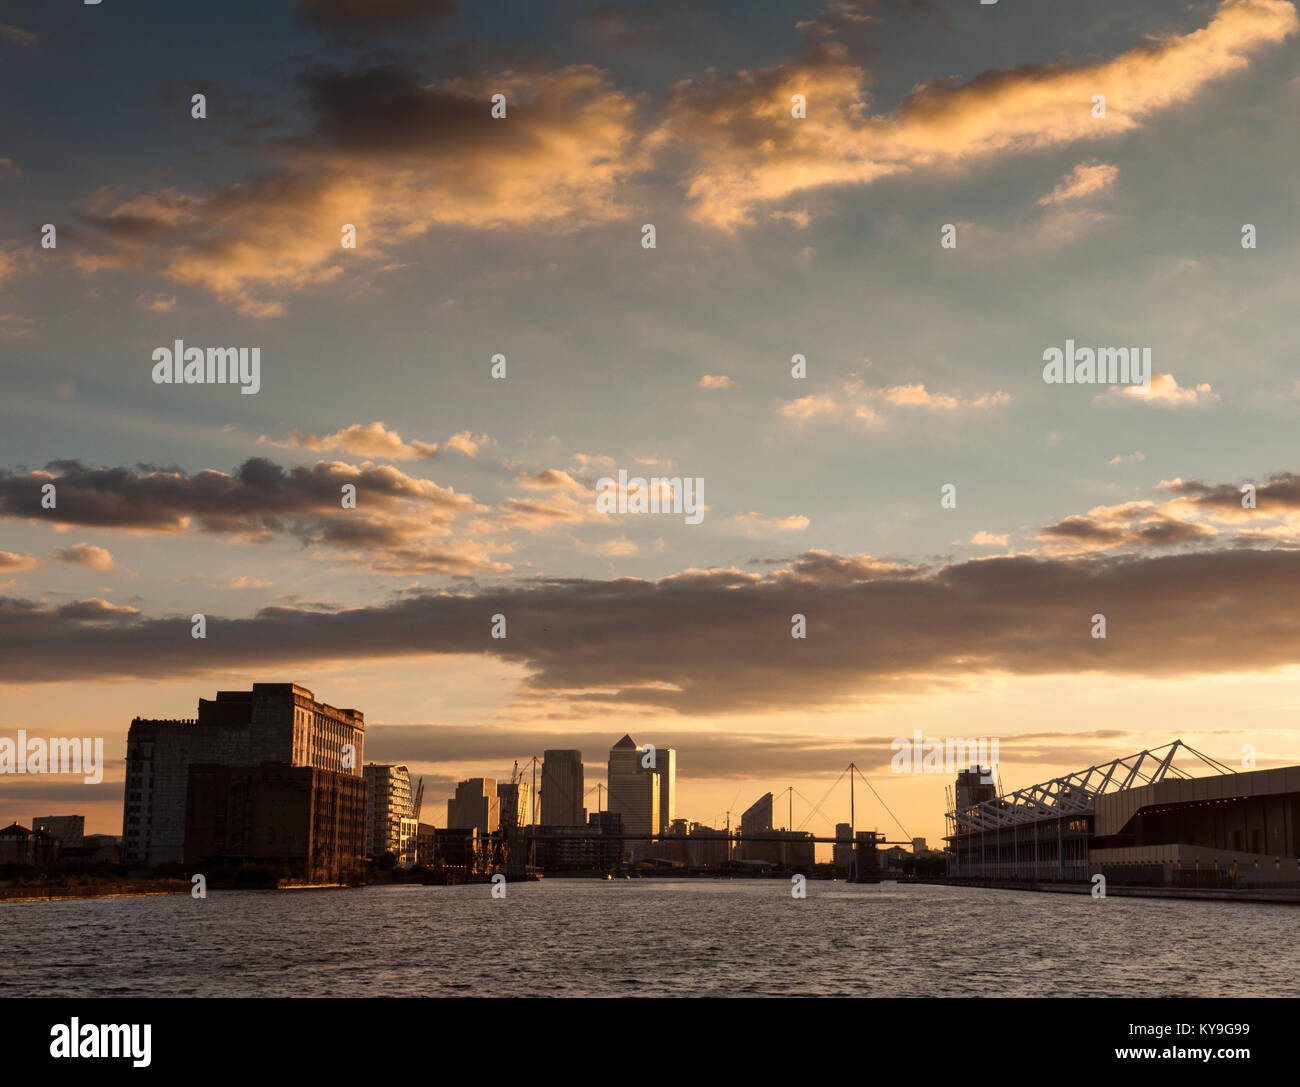 London, England, UK - July 31, 2010: Sunset casts a red sky across London's Docklands financial district and - Stock Image